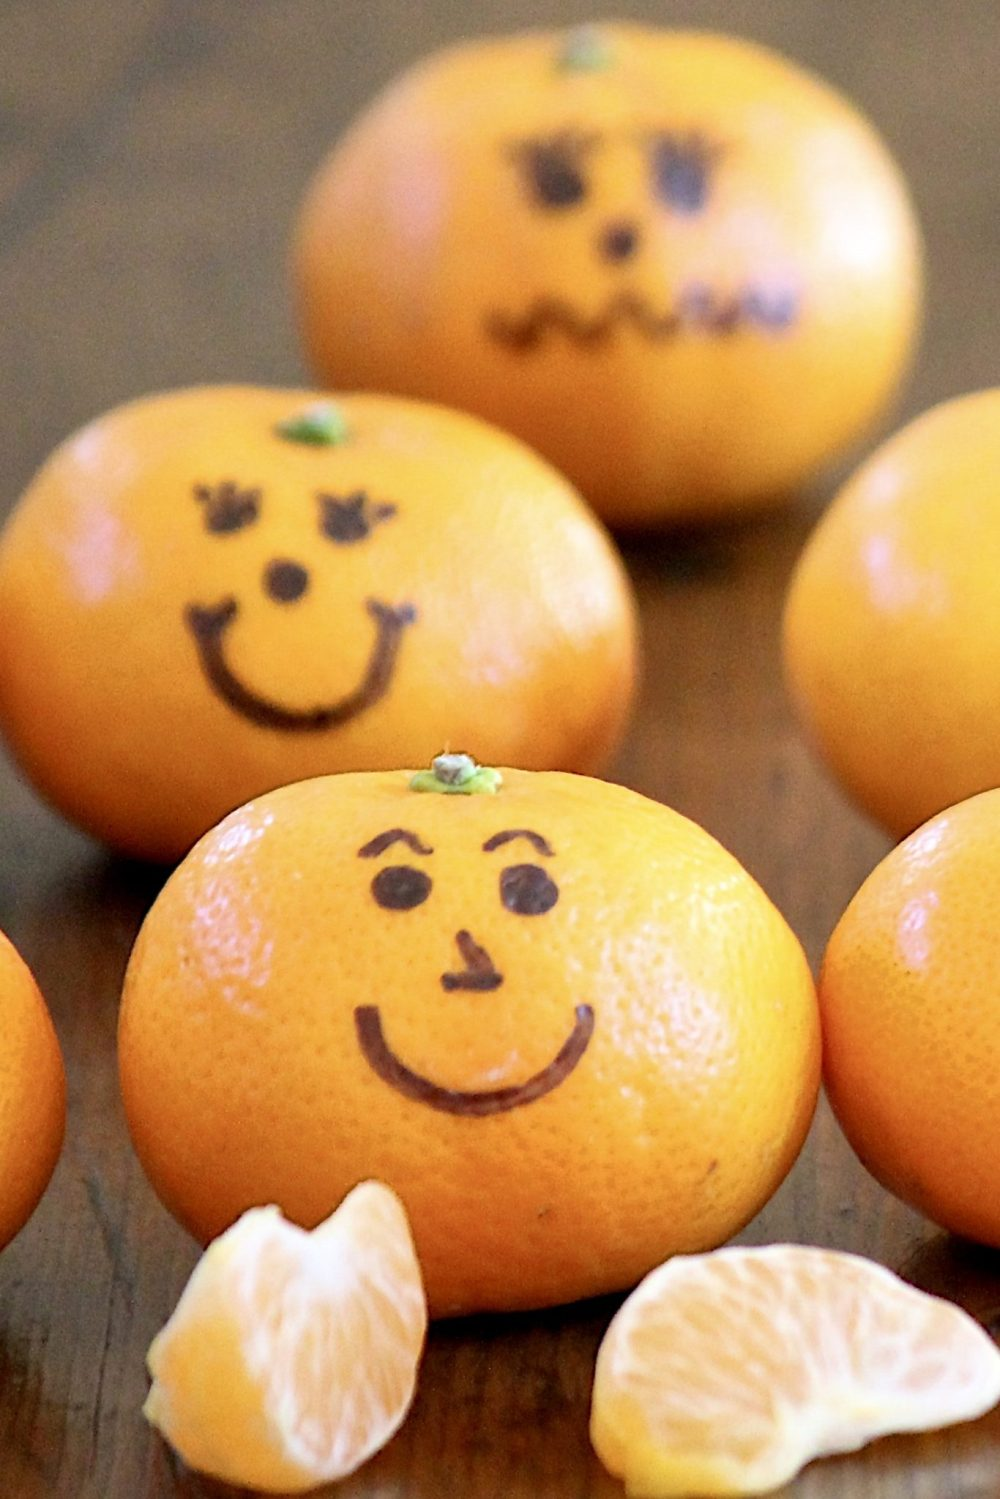 Clementine Jack-o'-lanterns – These healthy snacks make a fun project for children, whether at home or school parties, and are a welcome lunchbox surprise. There's a fun story behind them (plus an important tip for making the ink stick), and because every good celebration can benefit fromsome themed trivia, I've included some Halloween fun facts to use asconversation starters at holiday parties and around the dinner table.